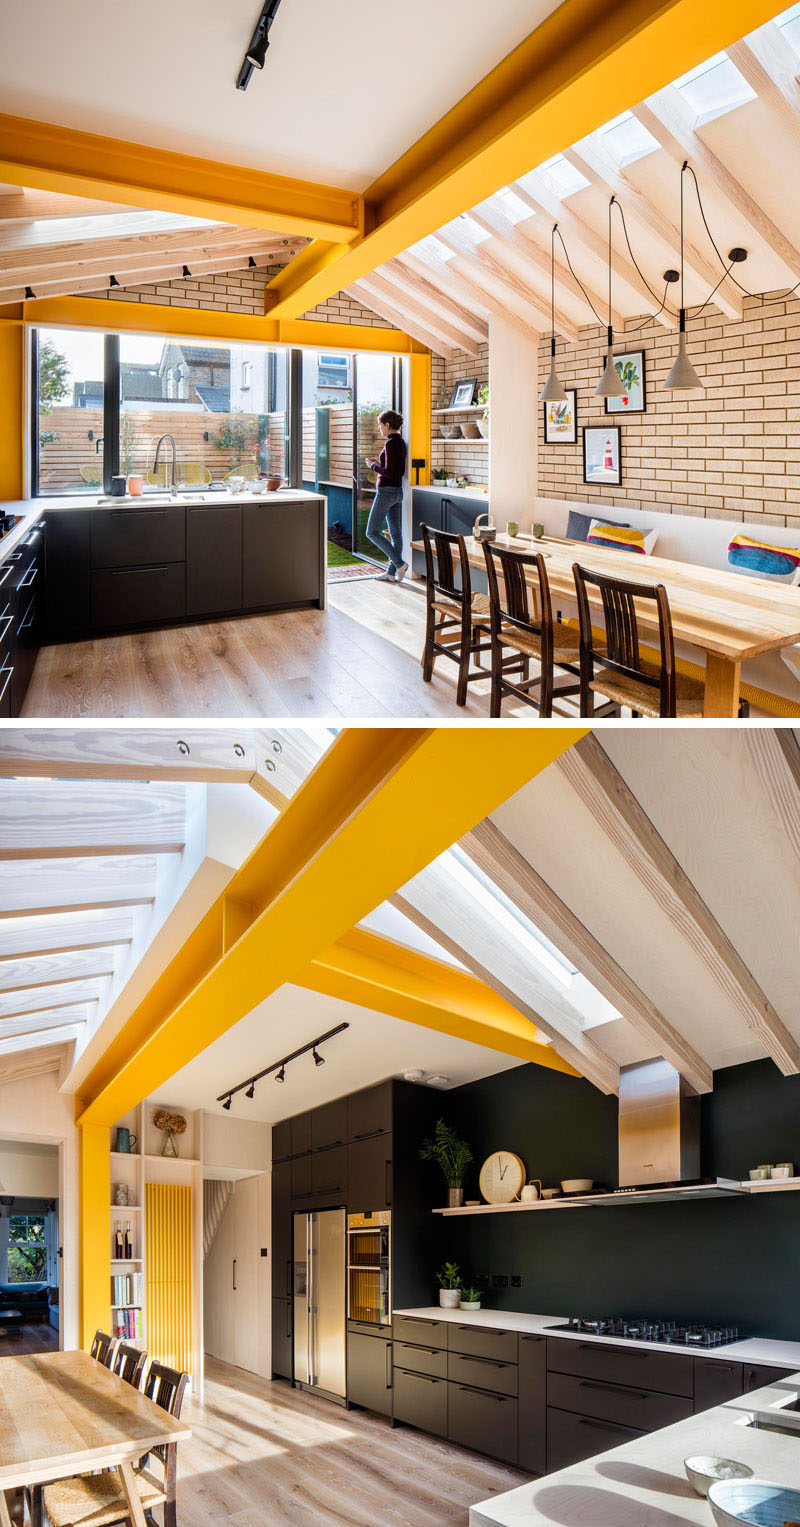 Inside this brick extension by Woodrow Architects, large yellow steel beams provide support, whileunconnected rafters sail over with steel plate apex connections allowing the design to do away with any ridge beam.# #YellowBeams #BlackKitchen #BrickExtension Visit Woodrow Architect's website here > https://www.wdrw.co.uk